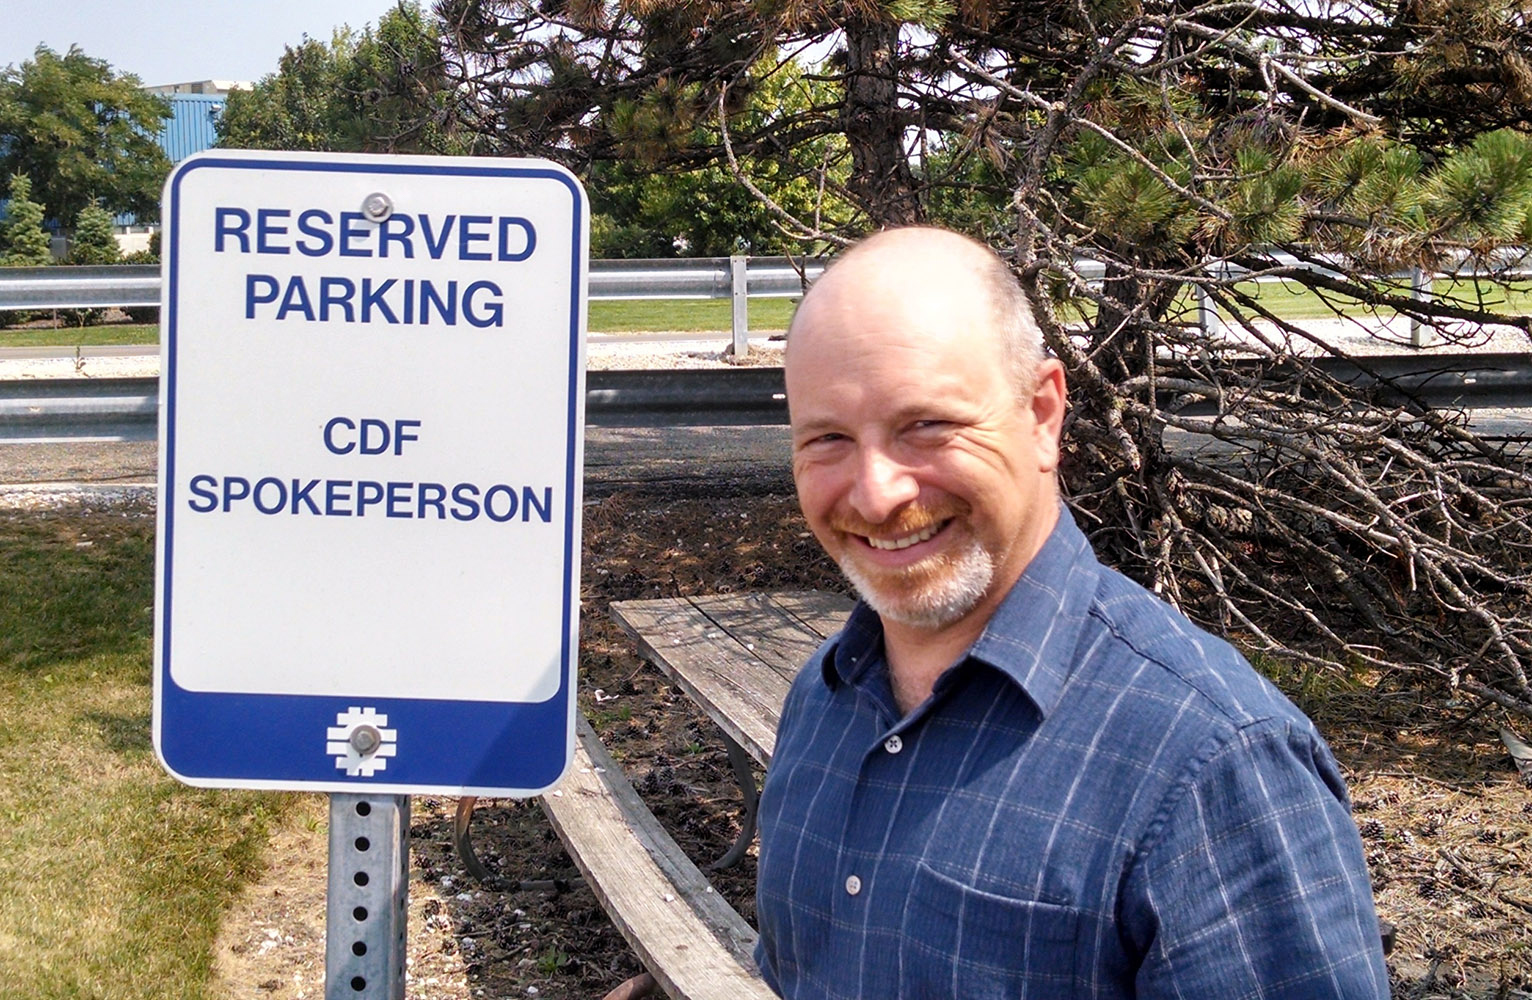 Dr. Dave Toback stands by the Reserved Parking sign for the CDF spokesperson